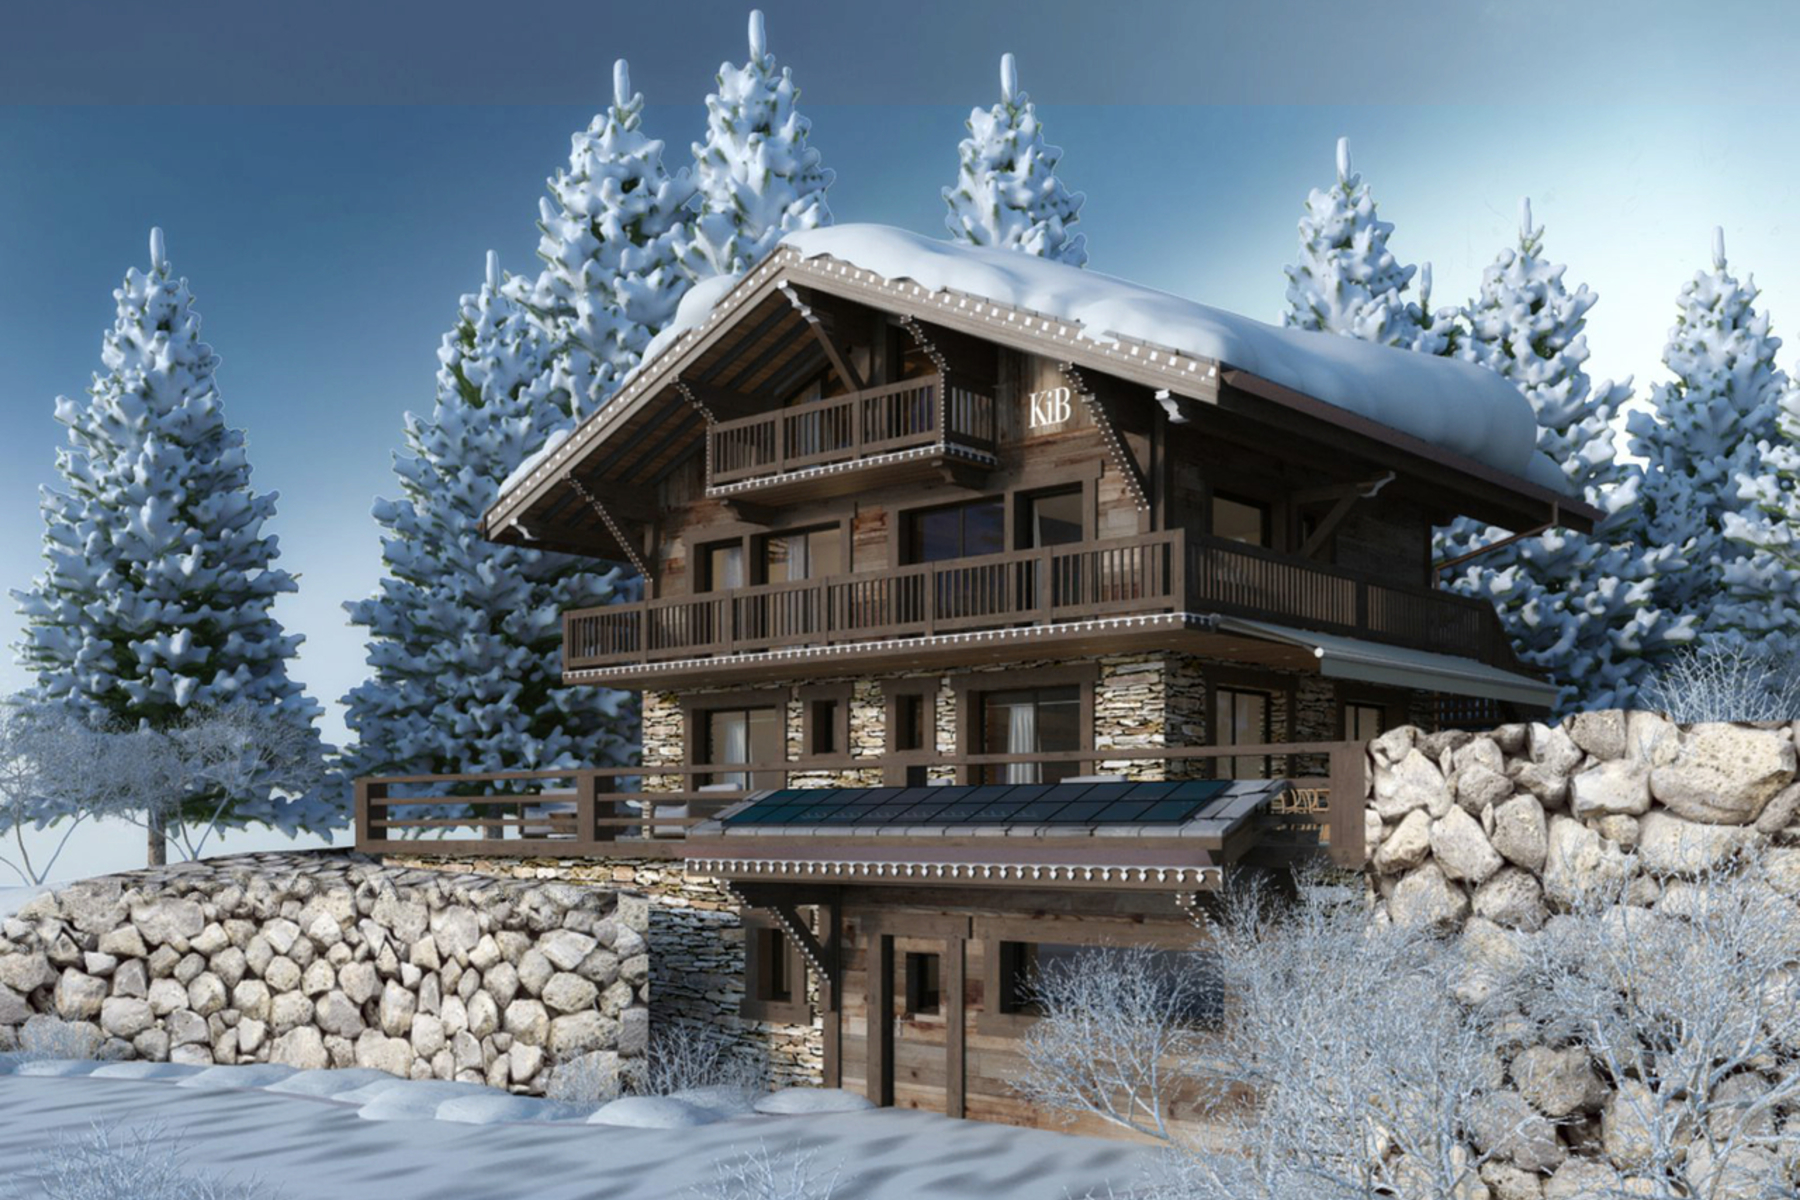 Additional photo for property listing at Chalet KibiByte Route de la Résidence 45 威拉尔, 沃州 1884 瑞士